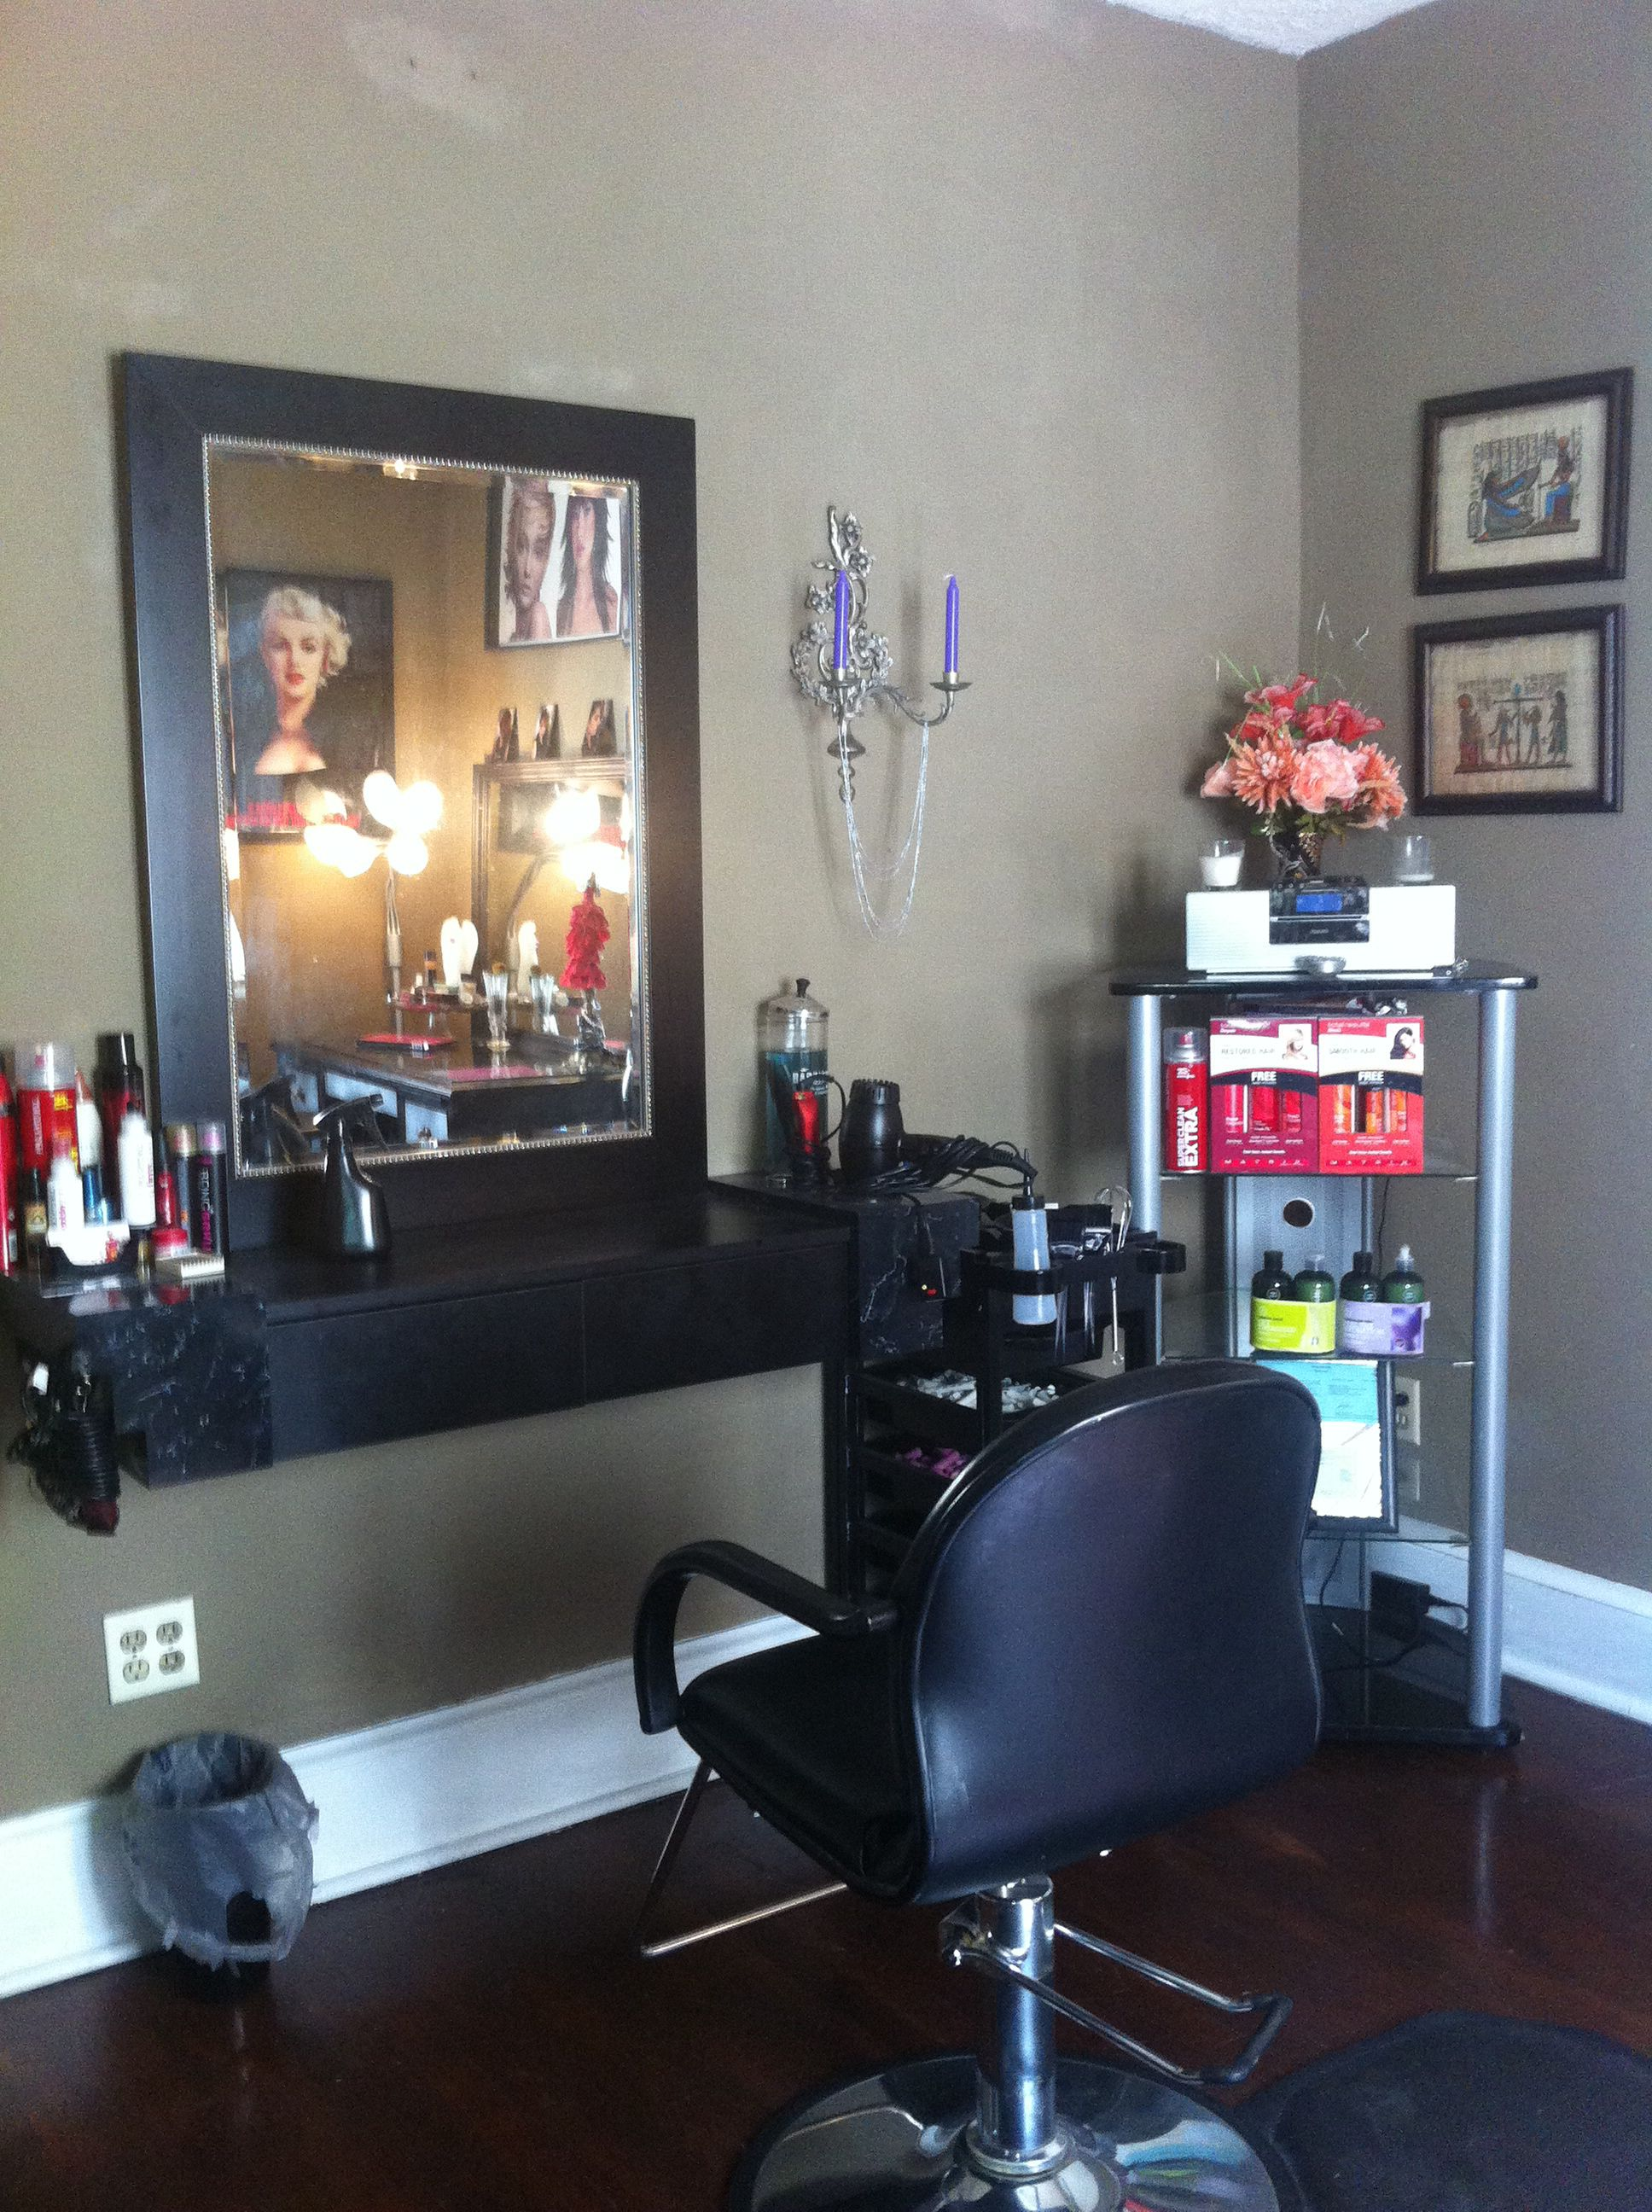 In home hair salon ideas  Decoracion de salon de belleza